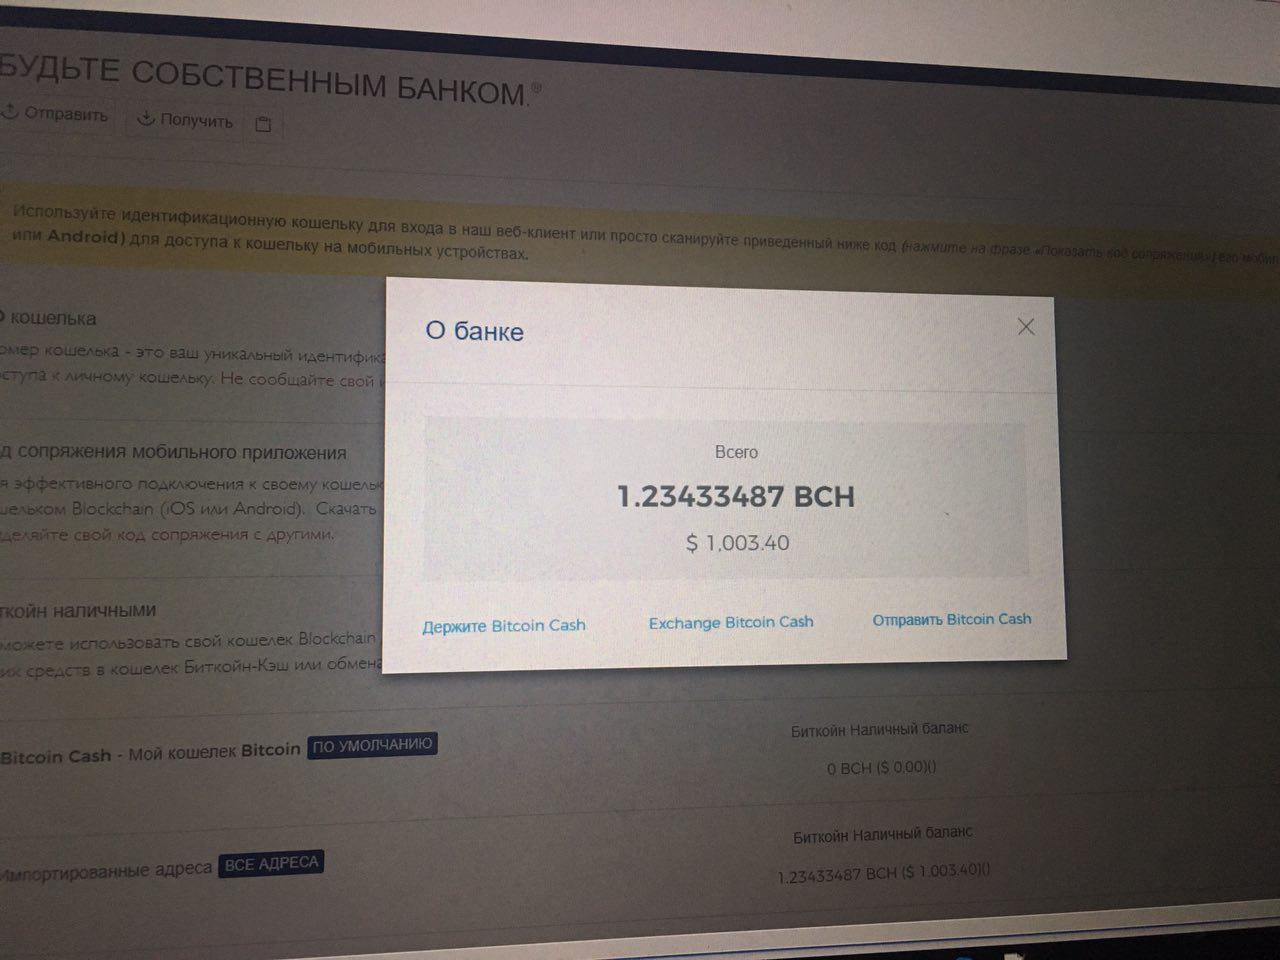 Exchange Bitcoin Cash